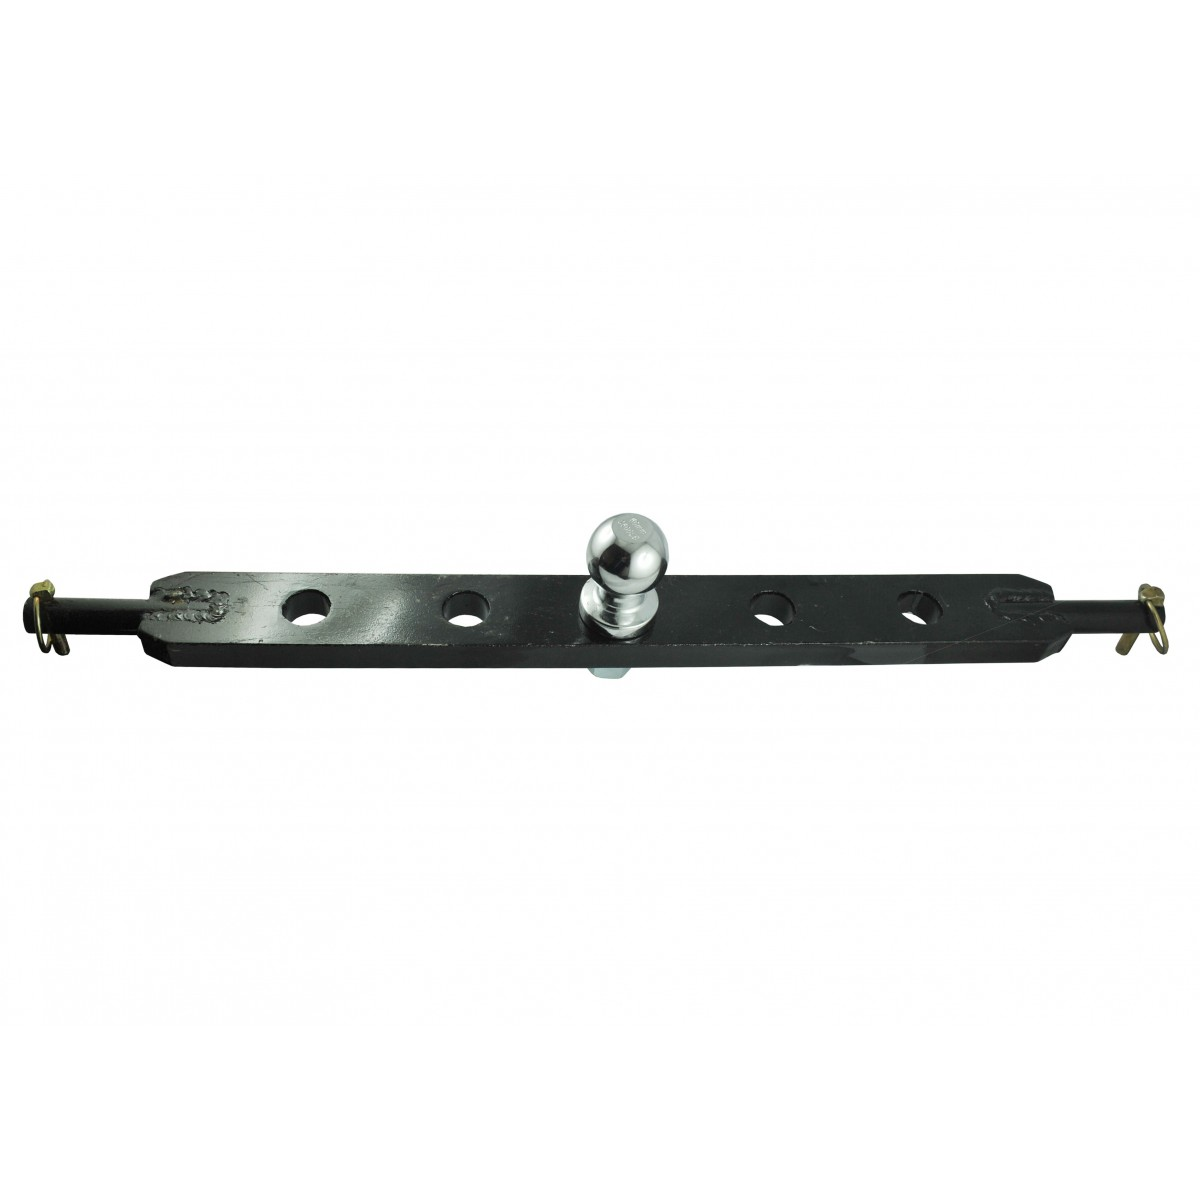 Beam + hitch ball 50 cm KAT 1 universal for three-point linkage